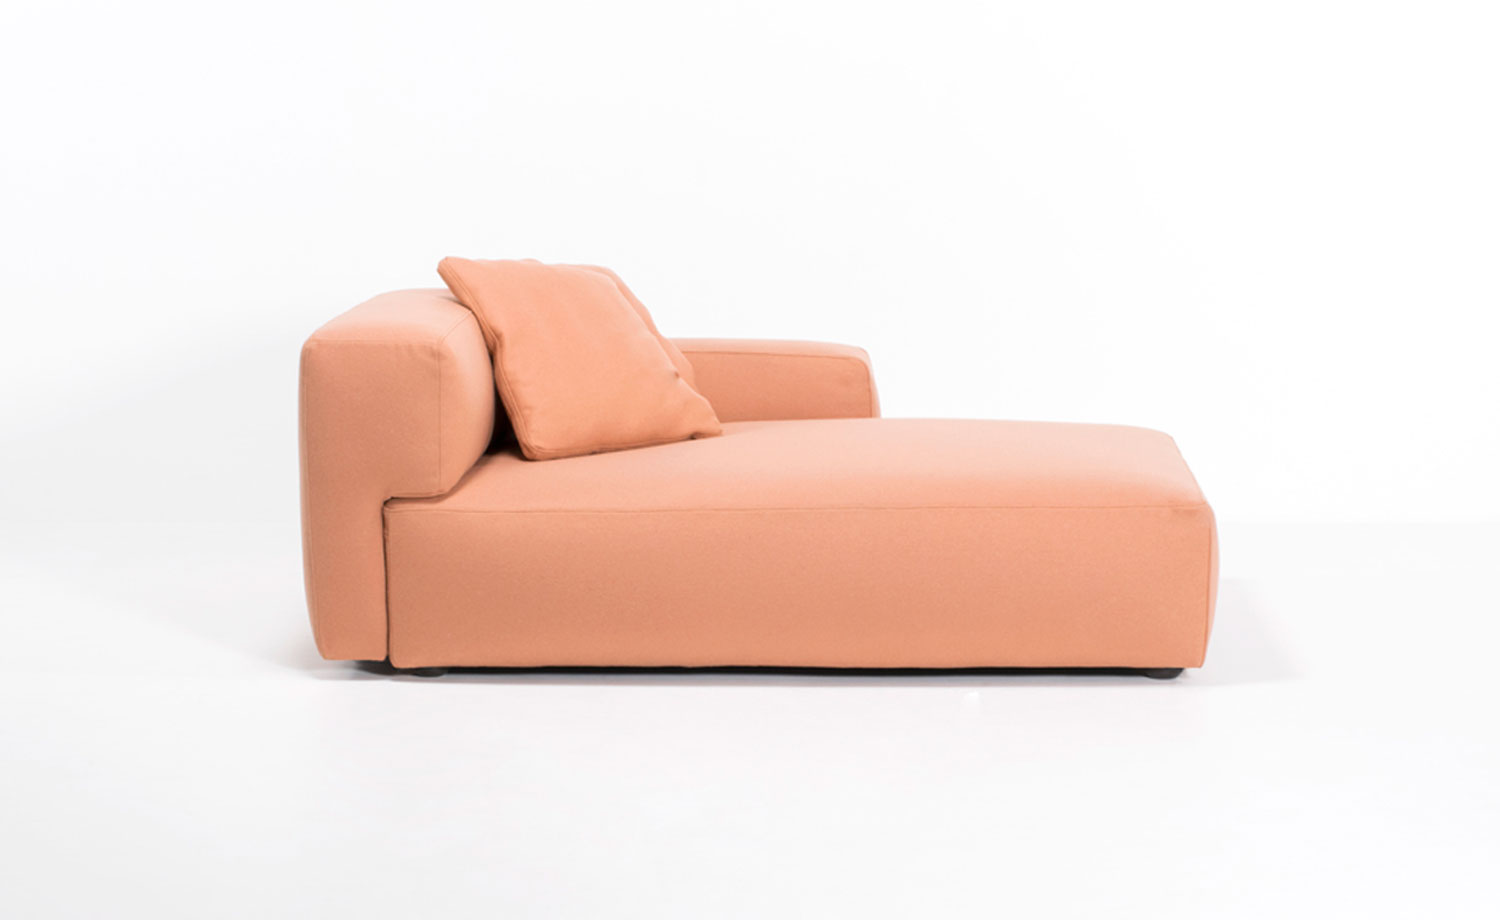 EXPO chaise longue image #6